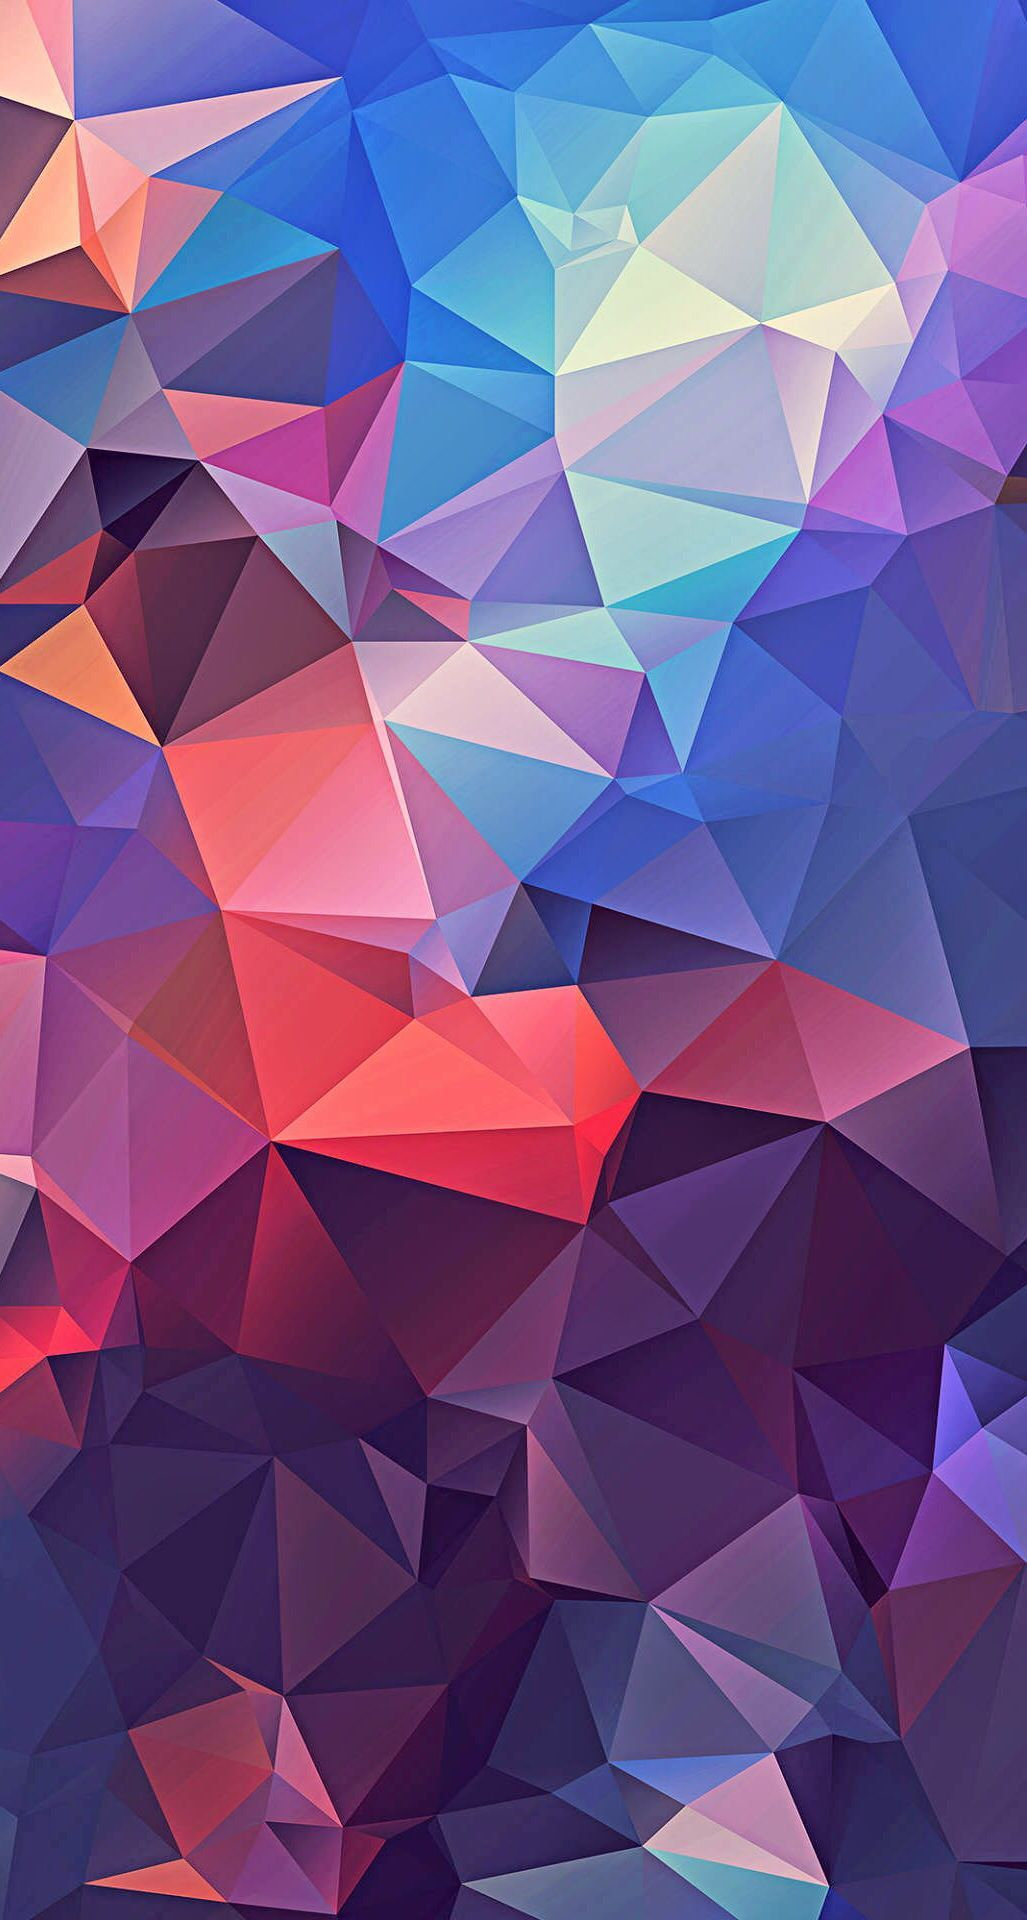 Free Colorful Geometric Wallpaper: #Abstract #Colorful IPhone Wallpaper